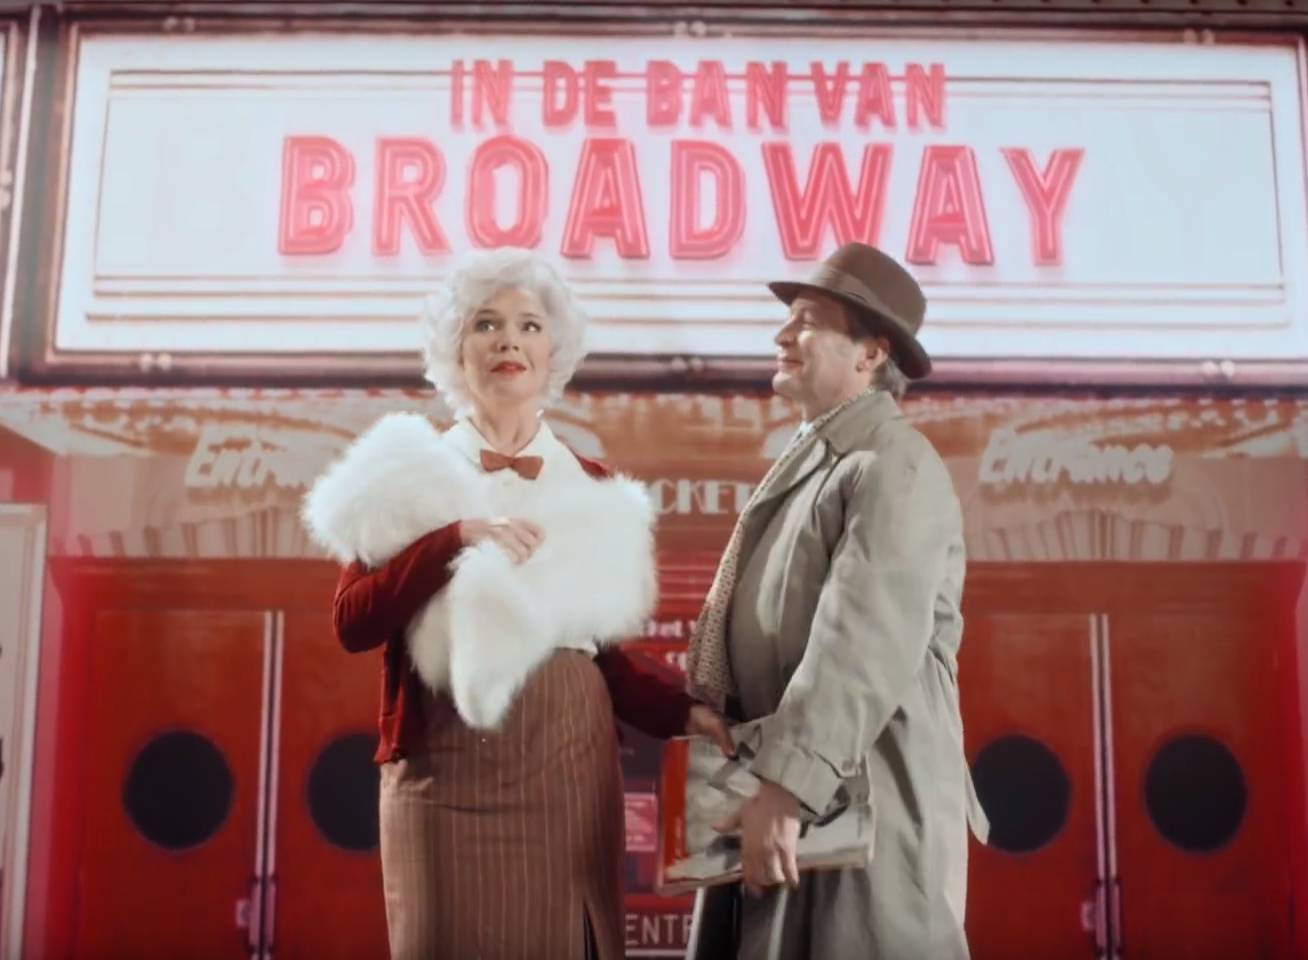 Gratis rang upgrade voor de musical 'In de ban van Broadway'